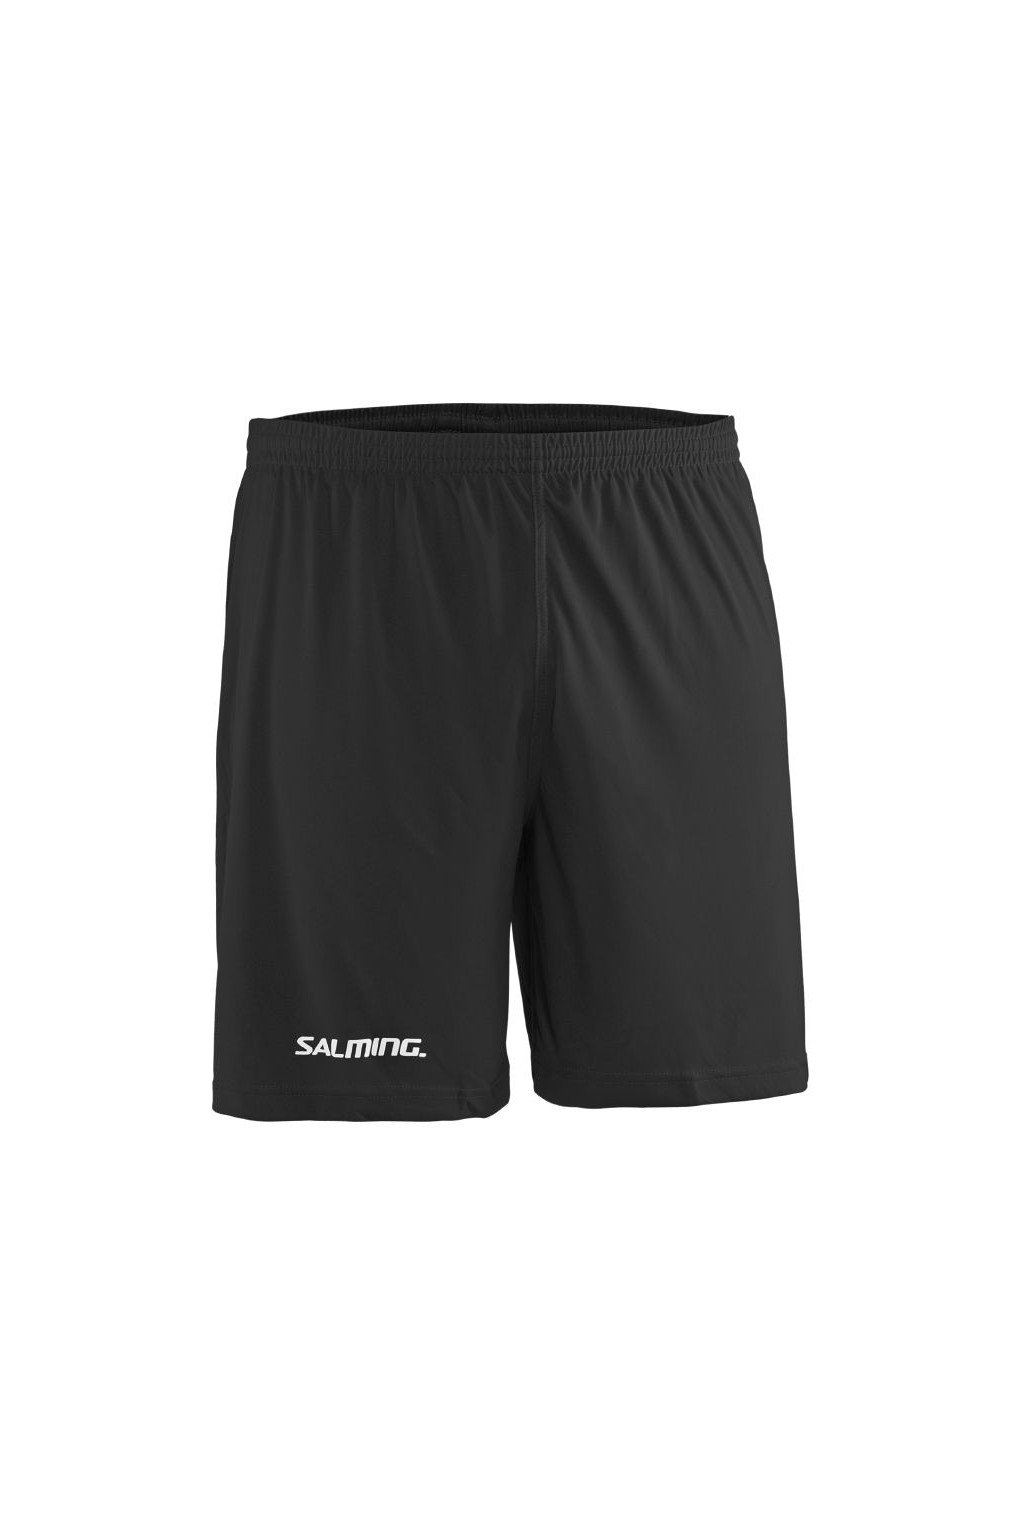 SALMING Core Shorts SR Black